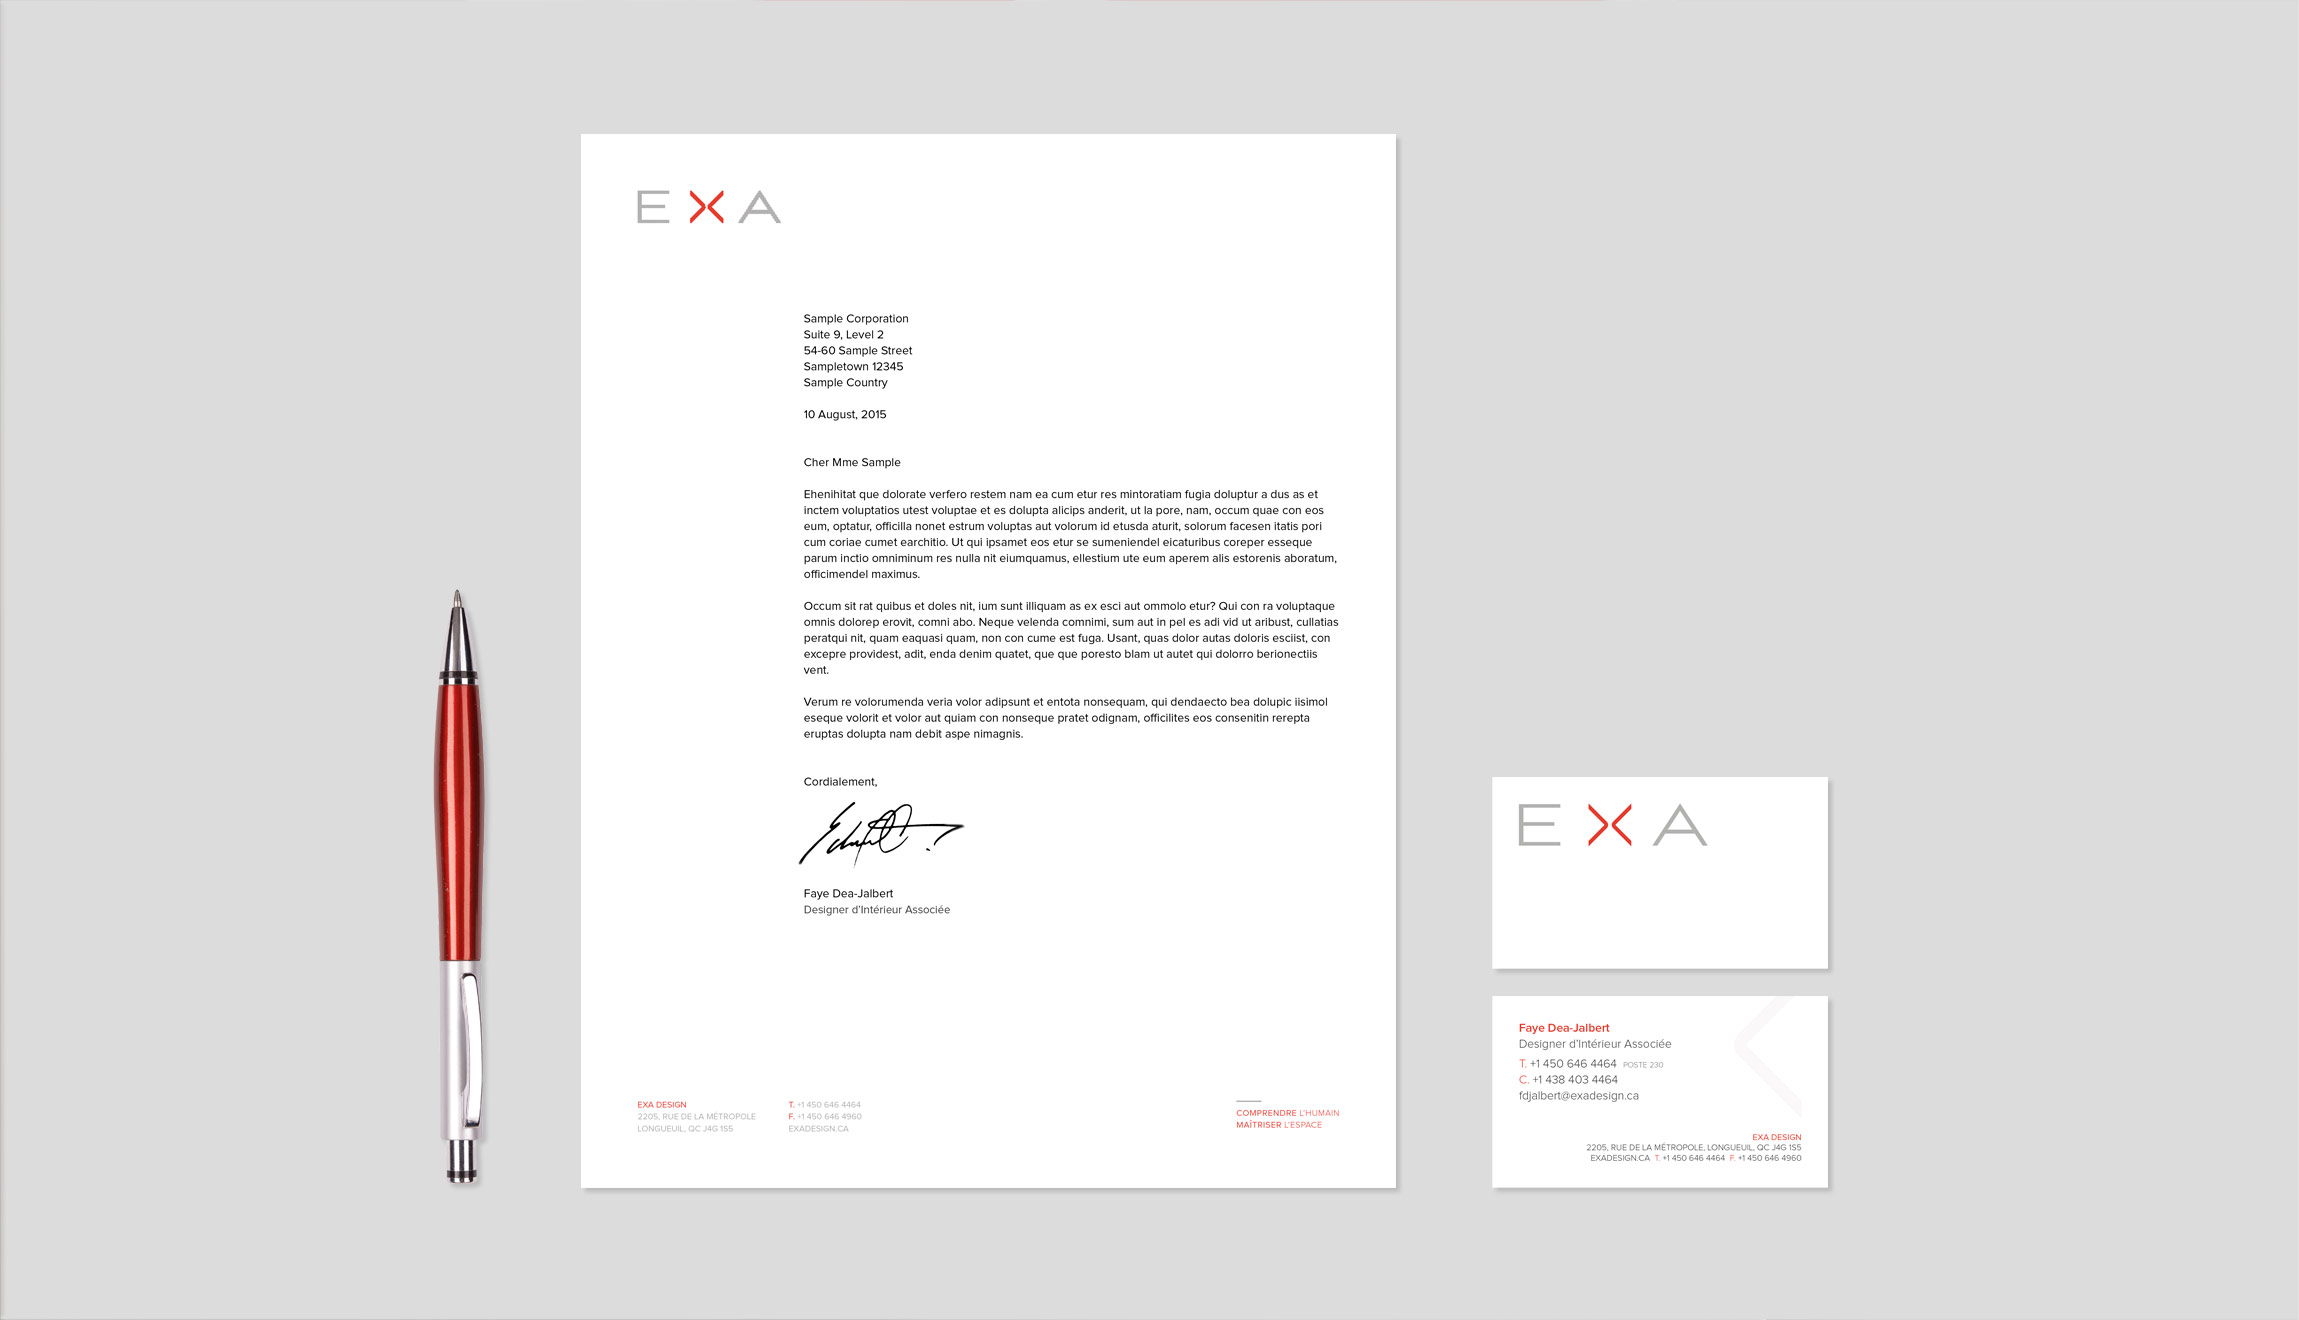 EXA Design stationery suite